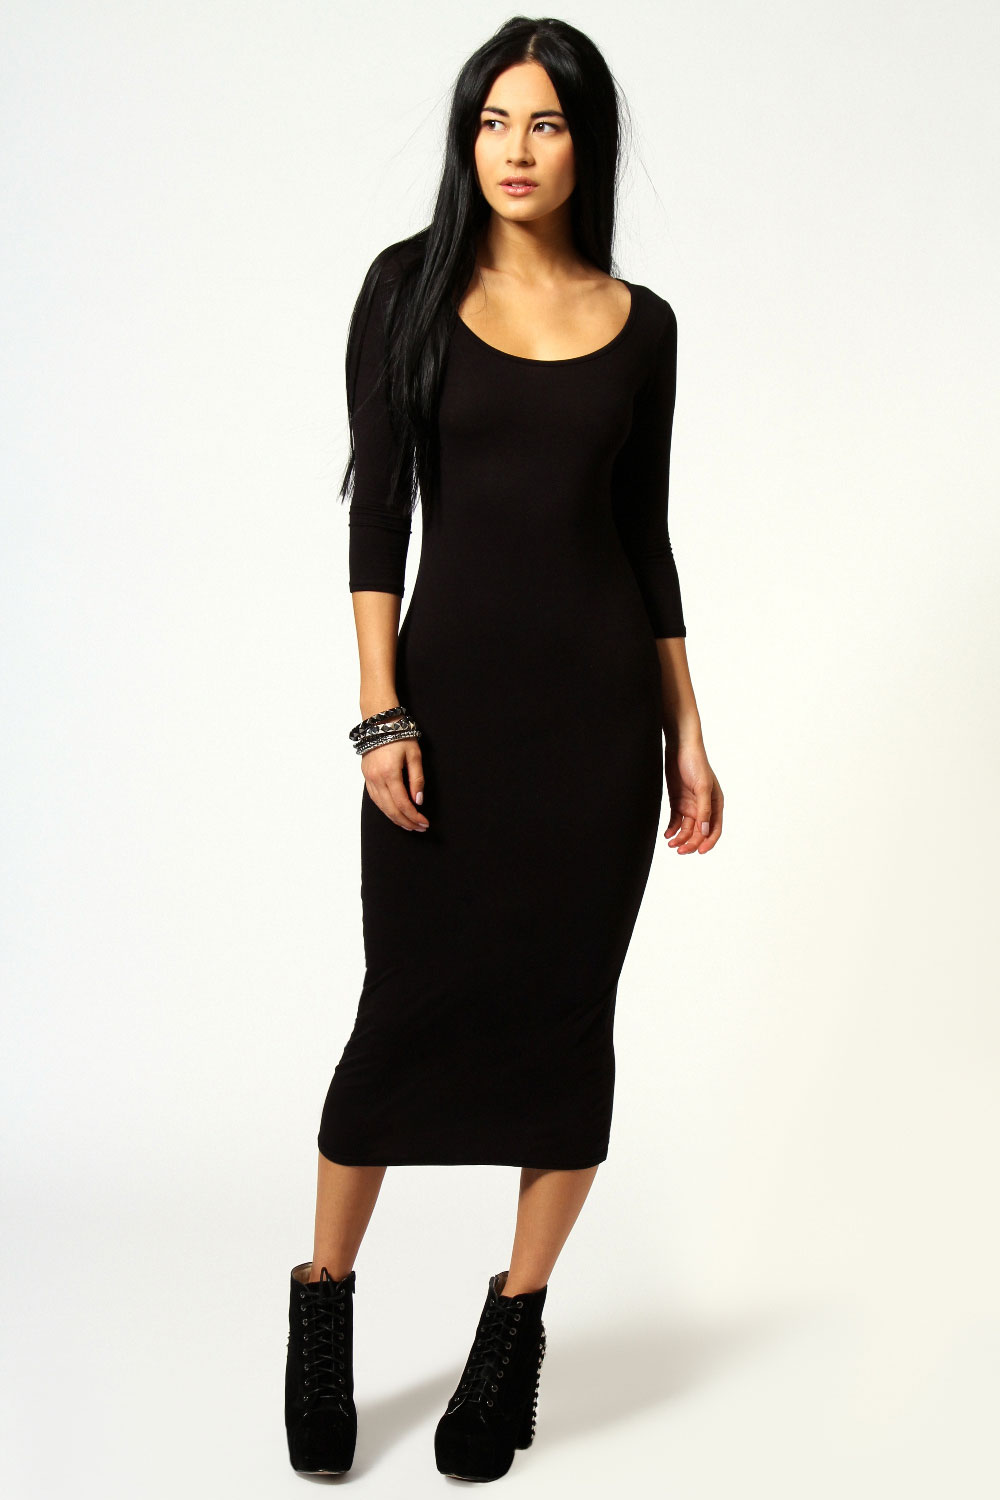 Boohoo-Womens-Ladies-Philippa-3-4-Sleeve-Midi-Dress